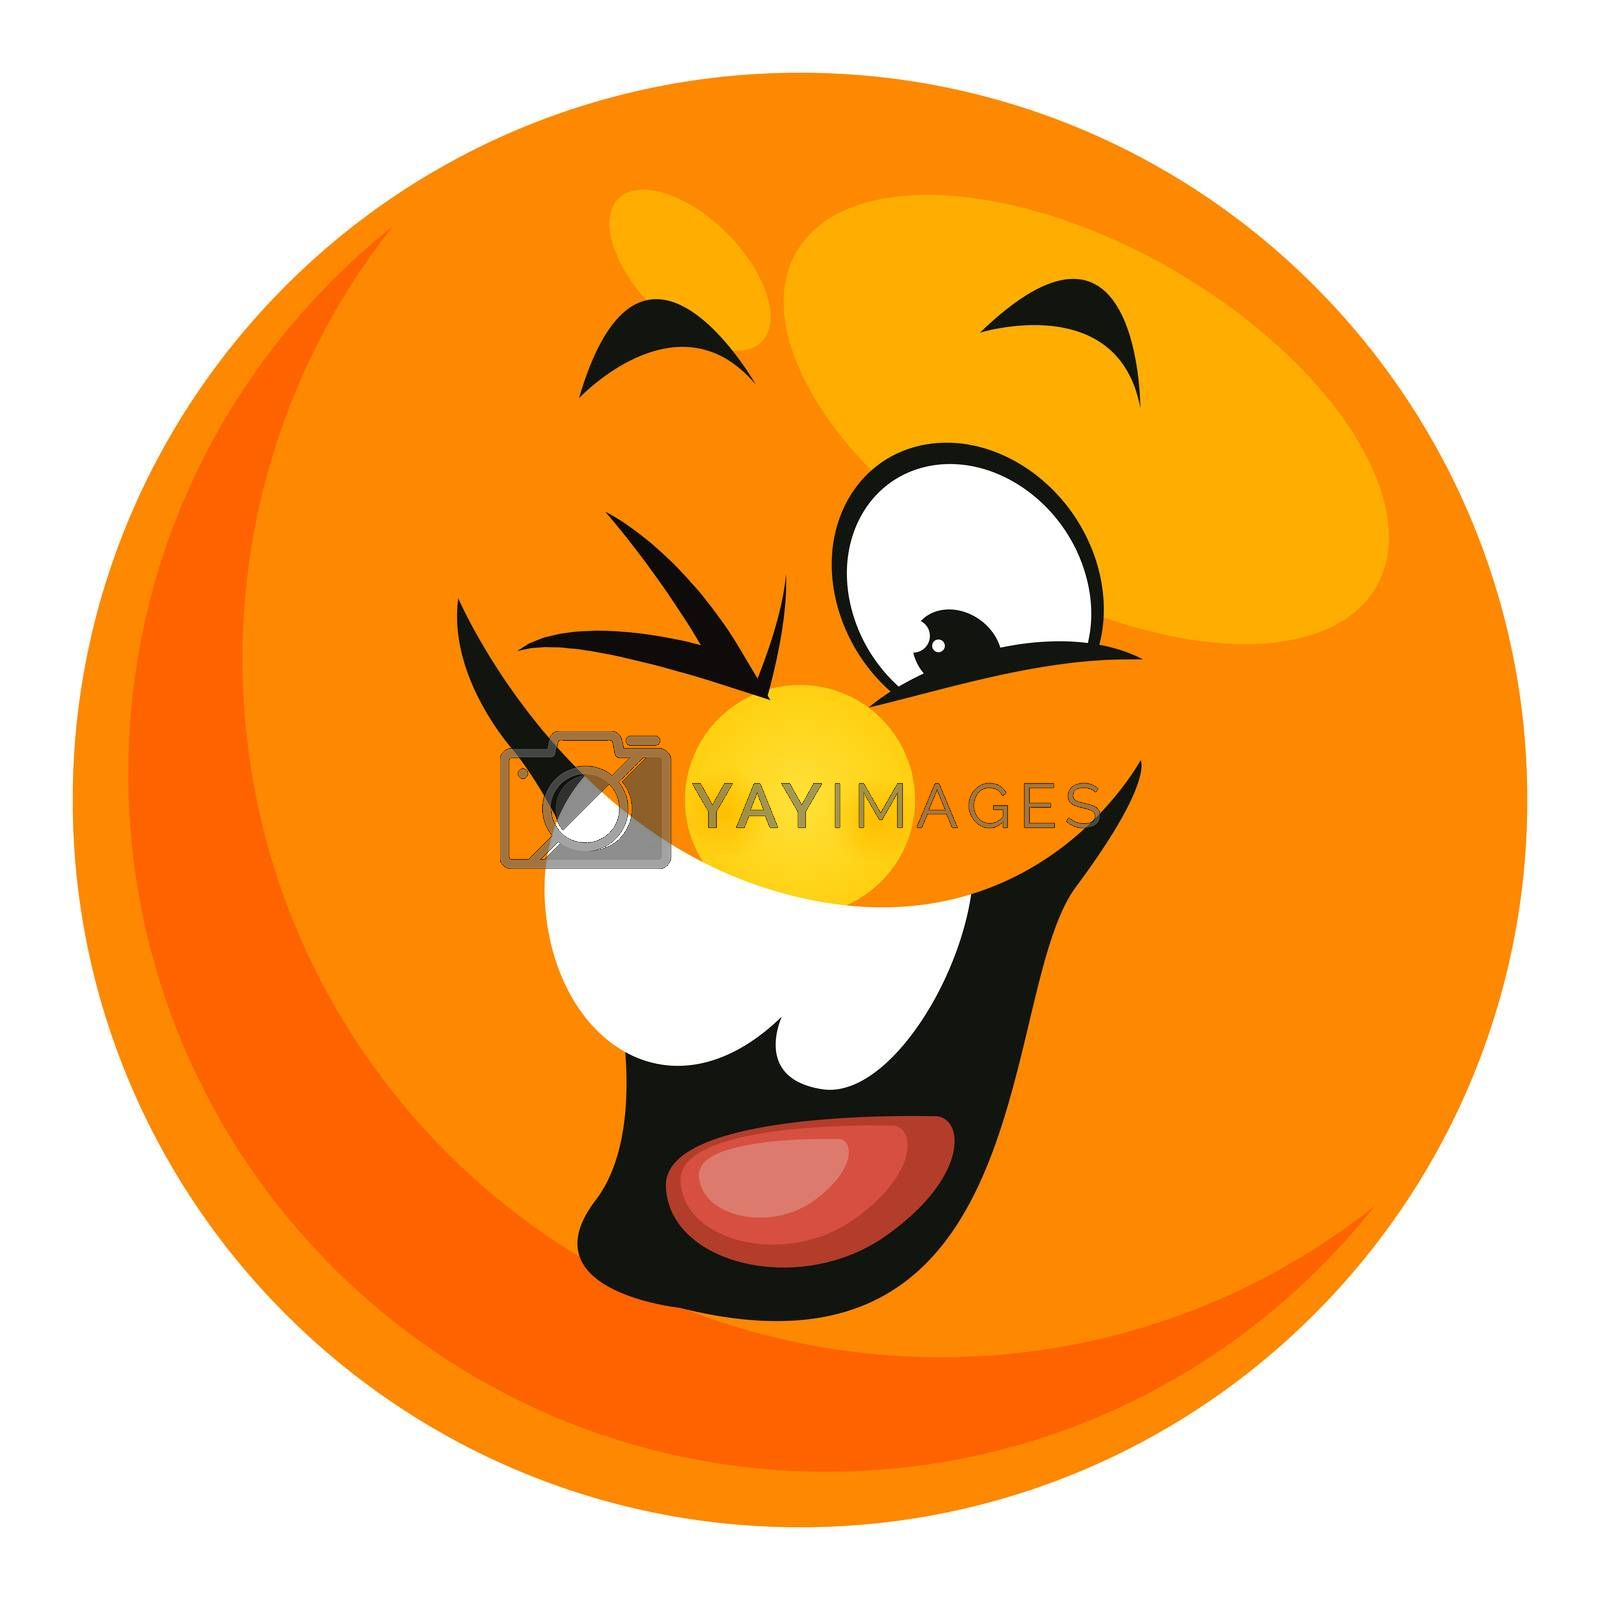 Laughing smiley, illustration, vector on white background